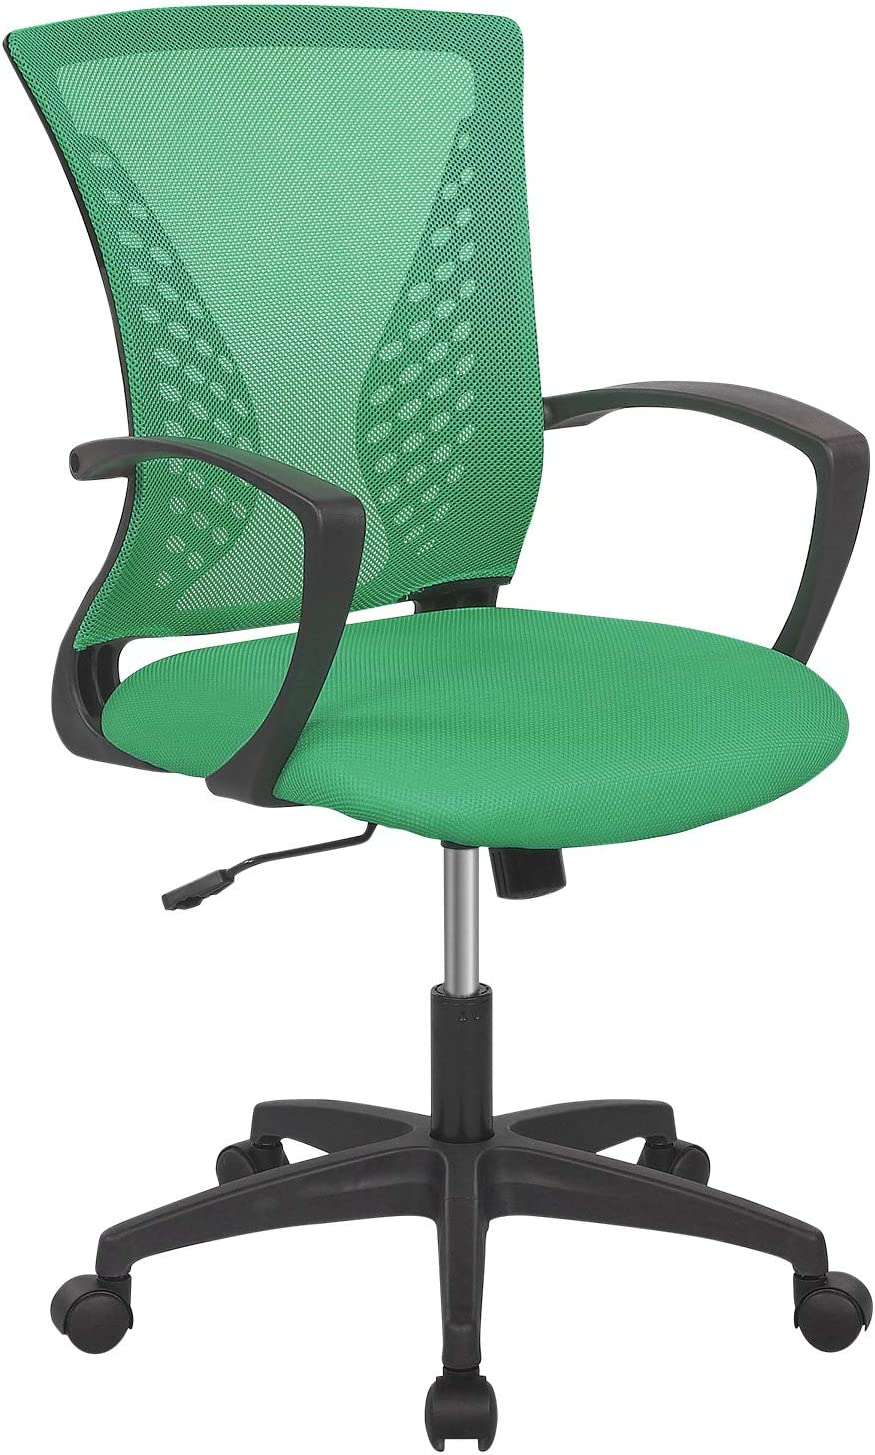 Home Office Chair Ergonomic Desk Chair Mesh Computer Chair with Lumbar Support Armrest Rolling Swivel Adjustable Mid Back Task Chair for Adults(Green)